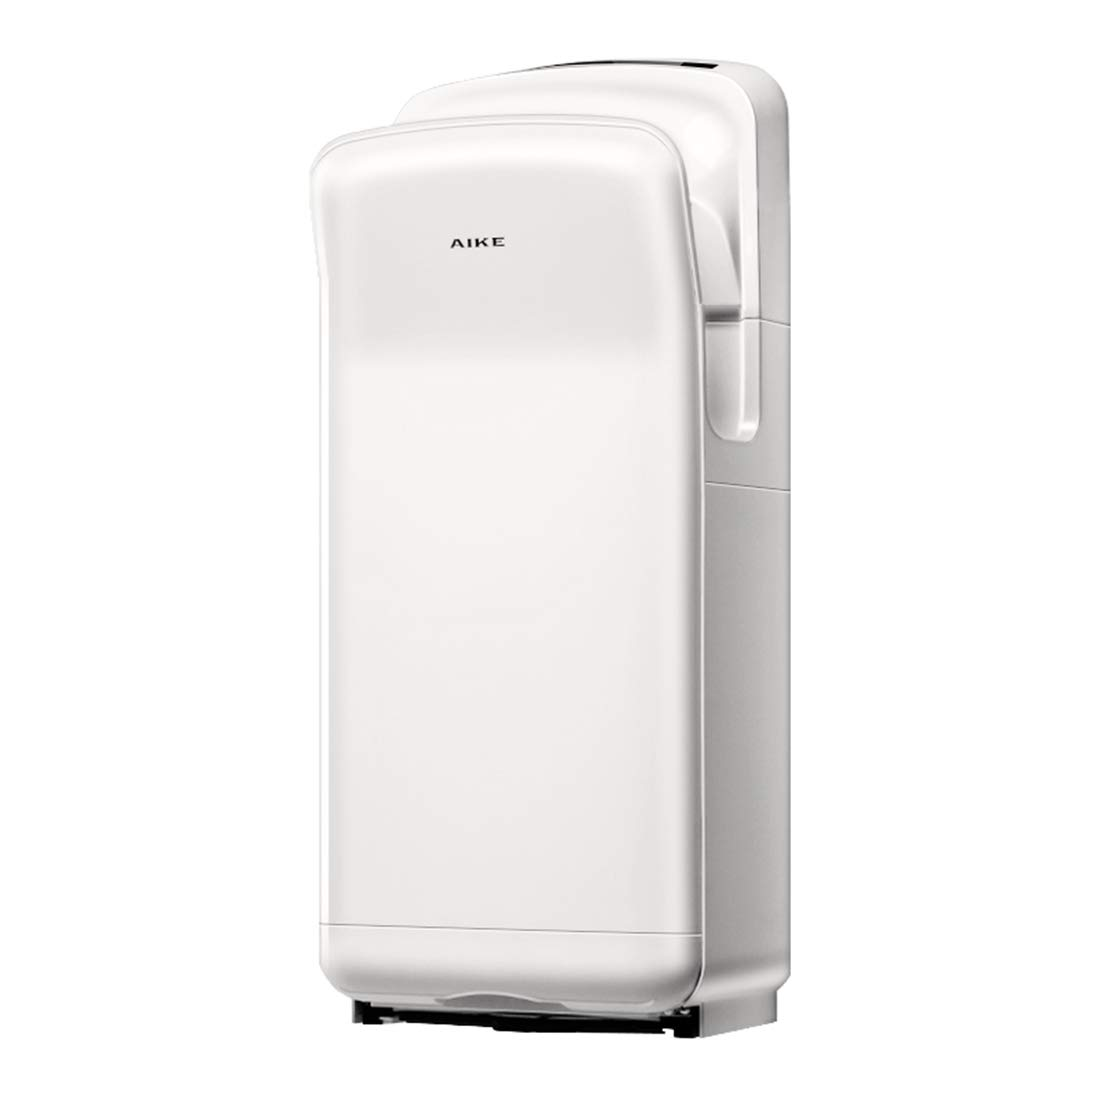 AIKE AK2005H Premium ABS Commercial High Speed Jet Hand Dryer with HEPA Filter 1850W Silver